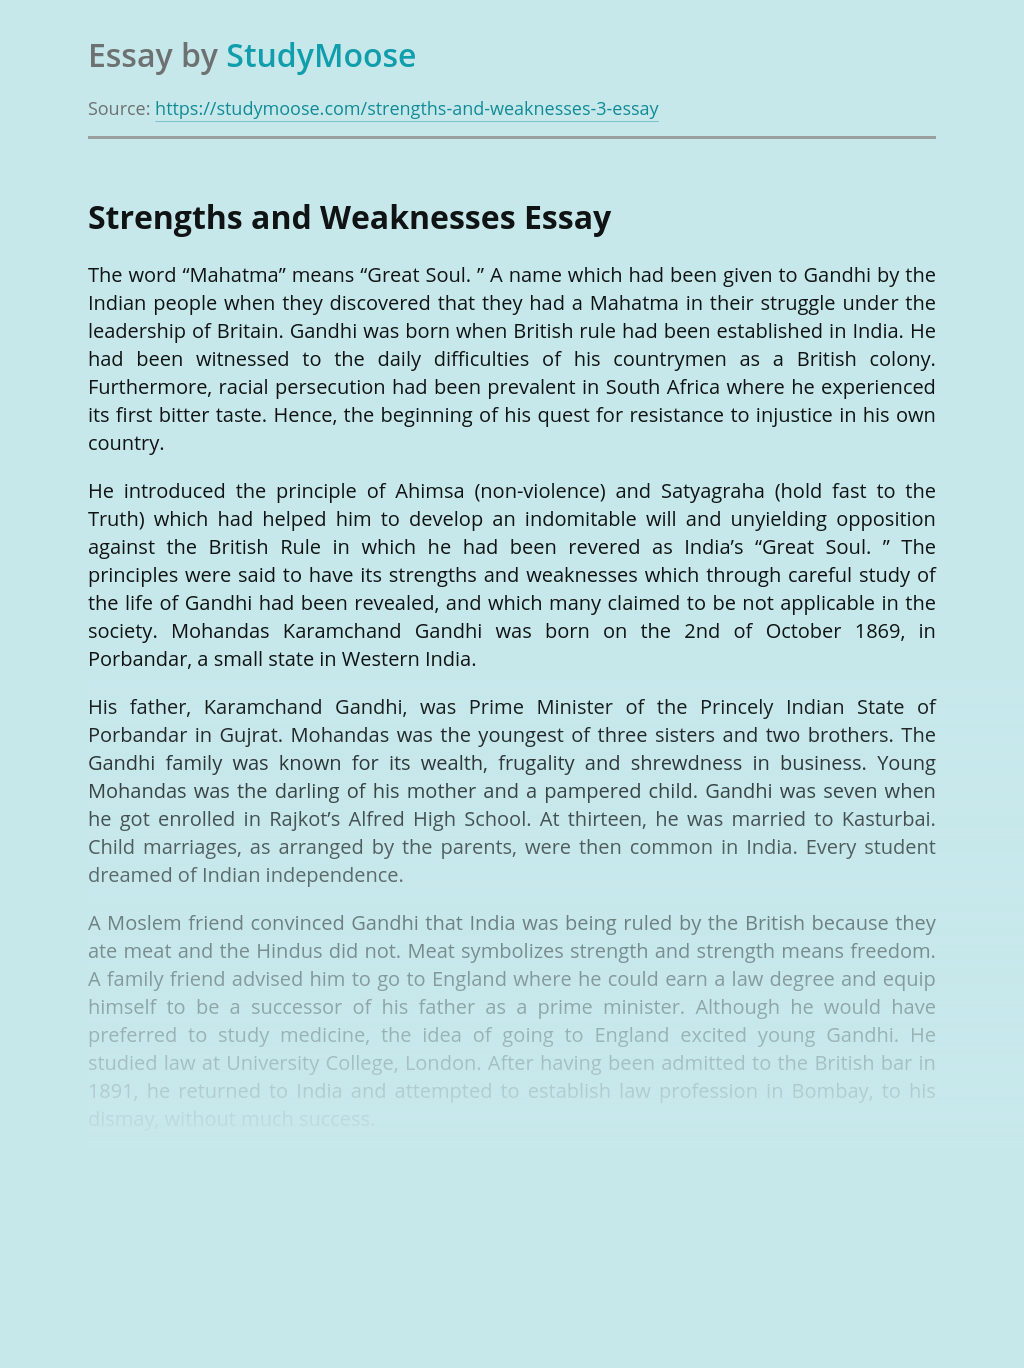 Strengths and Weaknesses of Gandhi Policies